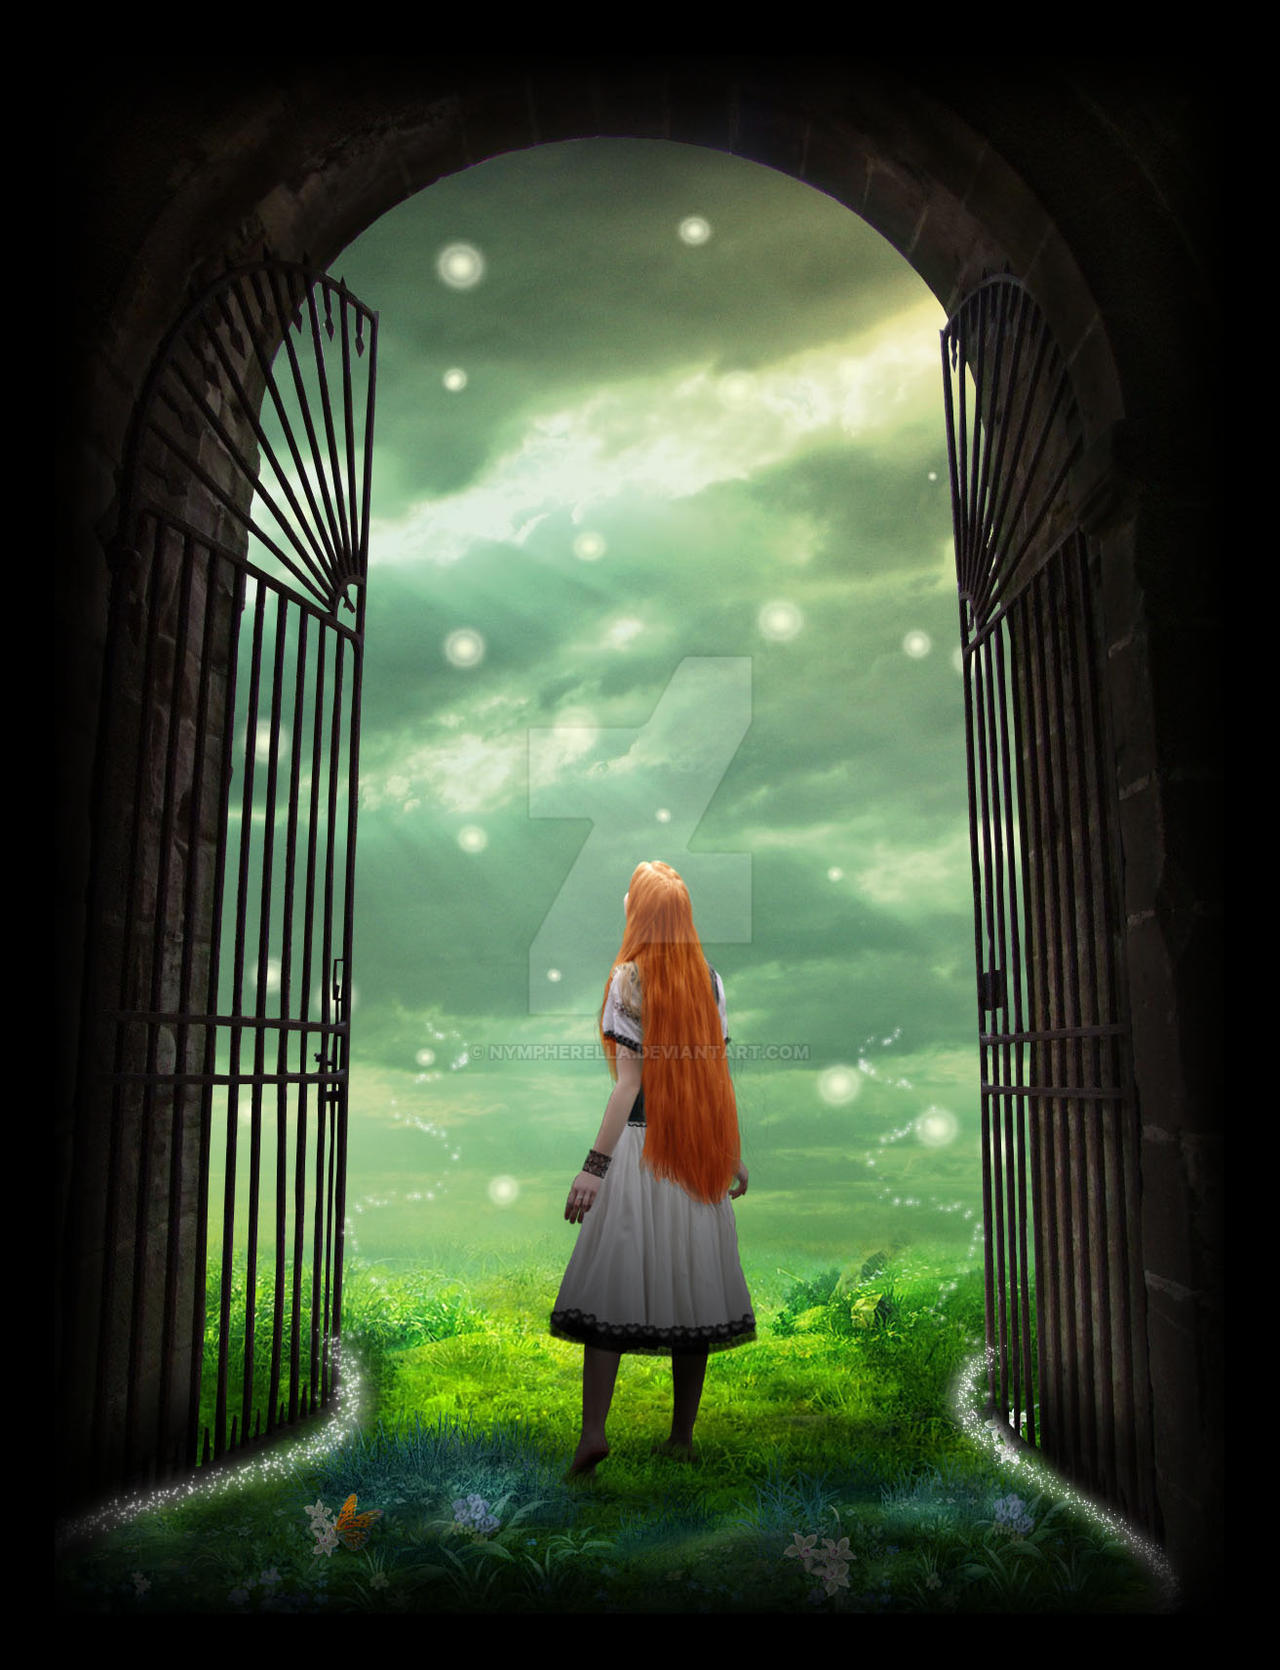 ... Door to a New World by Nympherella & Door to a New World by Nympherella on DeviantArt